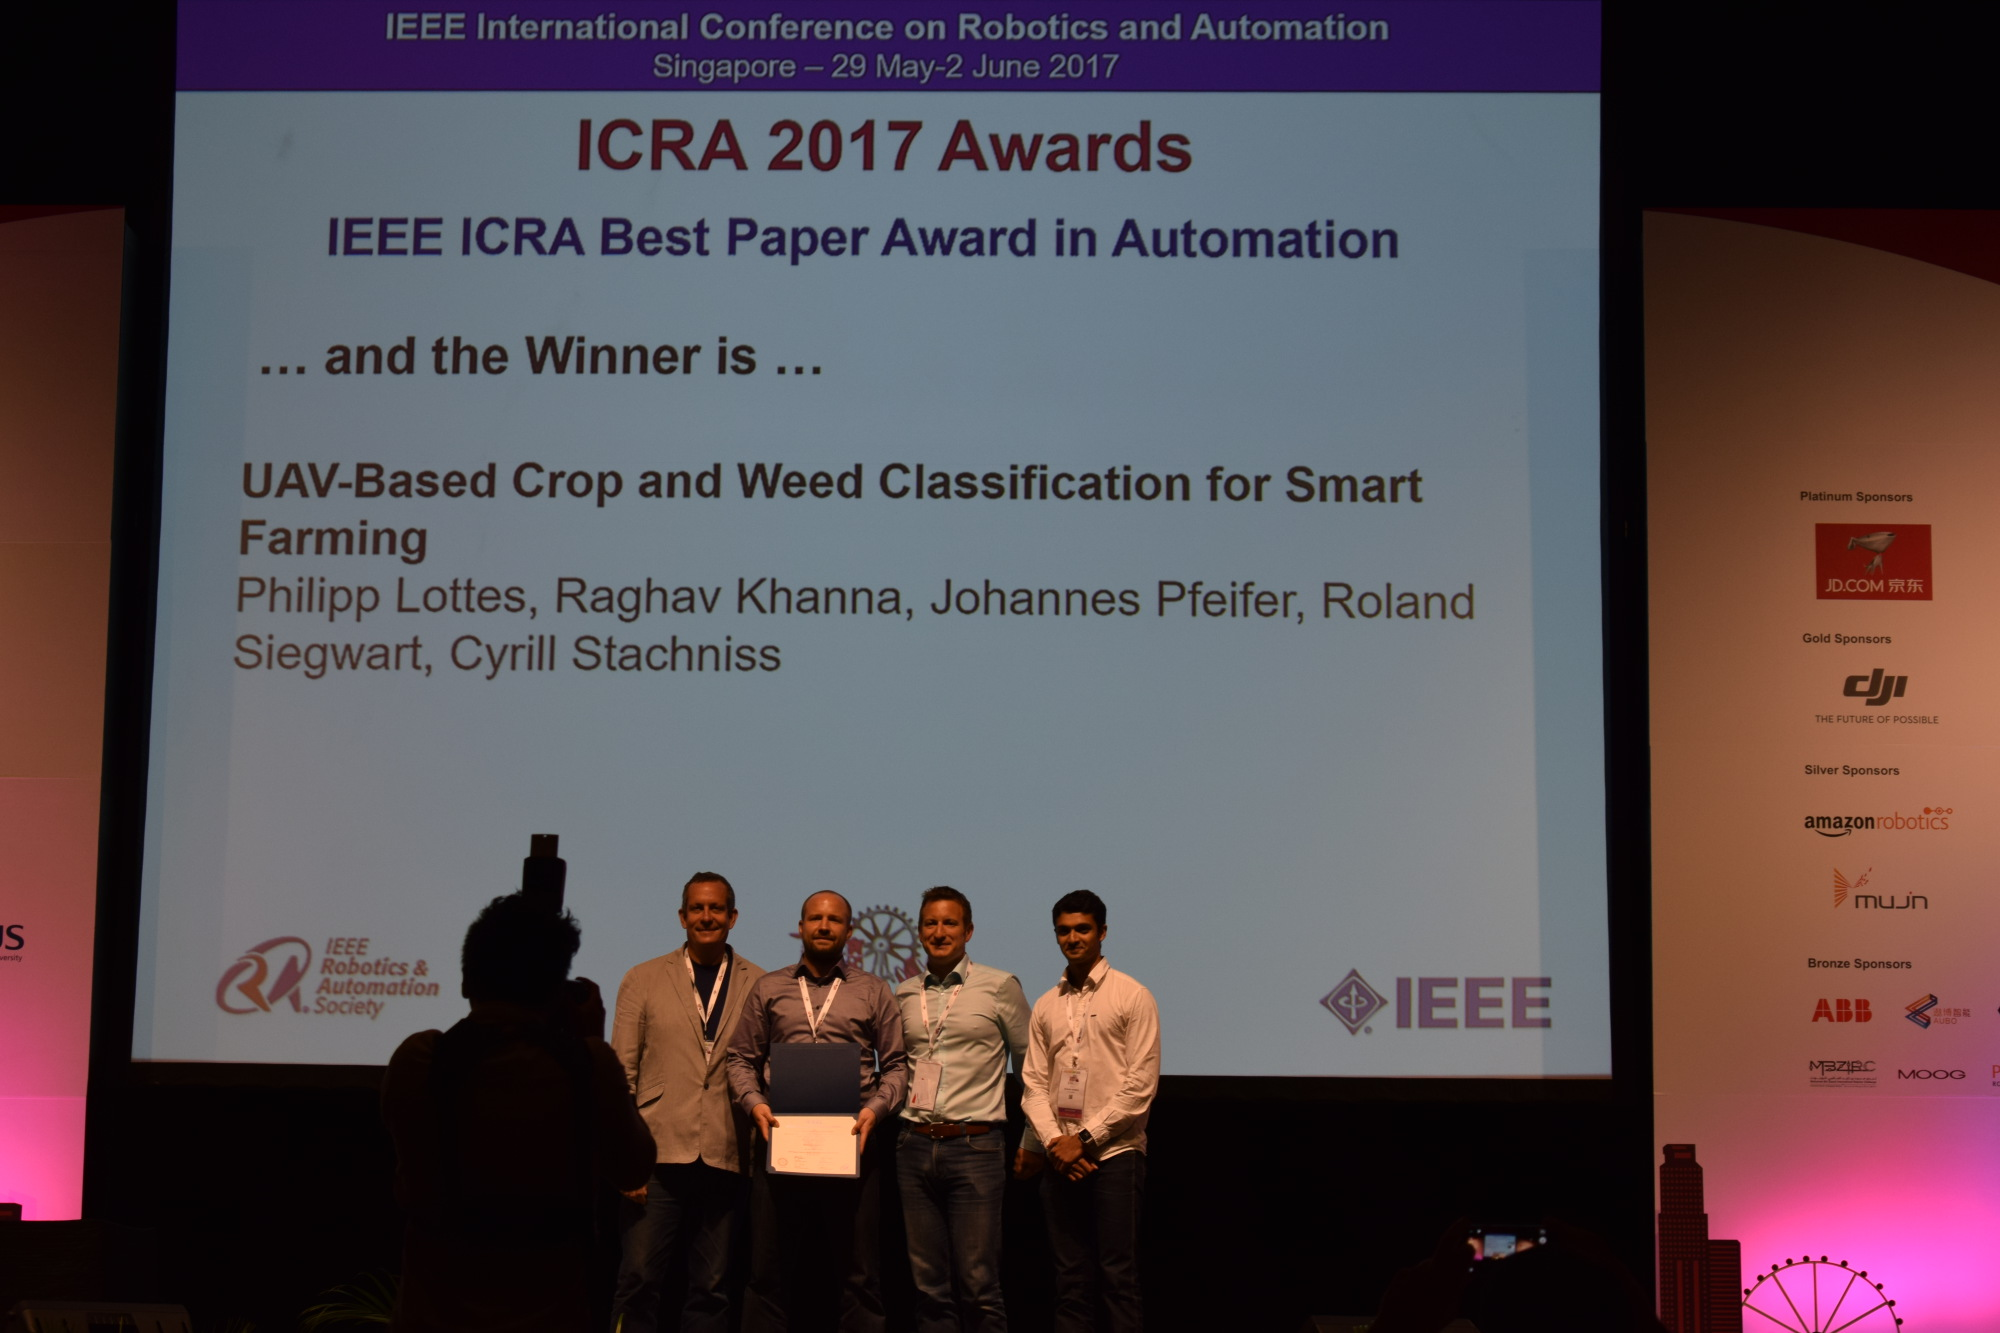 2017 06 Uav Based Crop And Weed Classification For Smart Farming